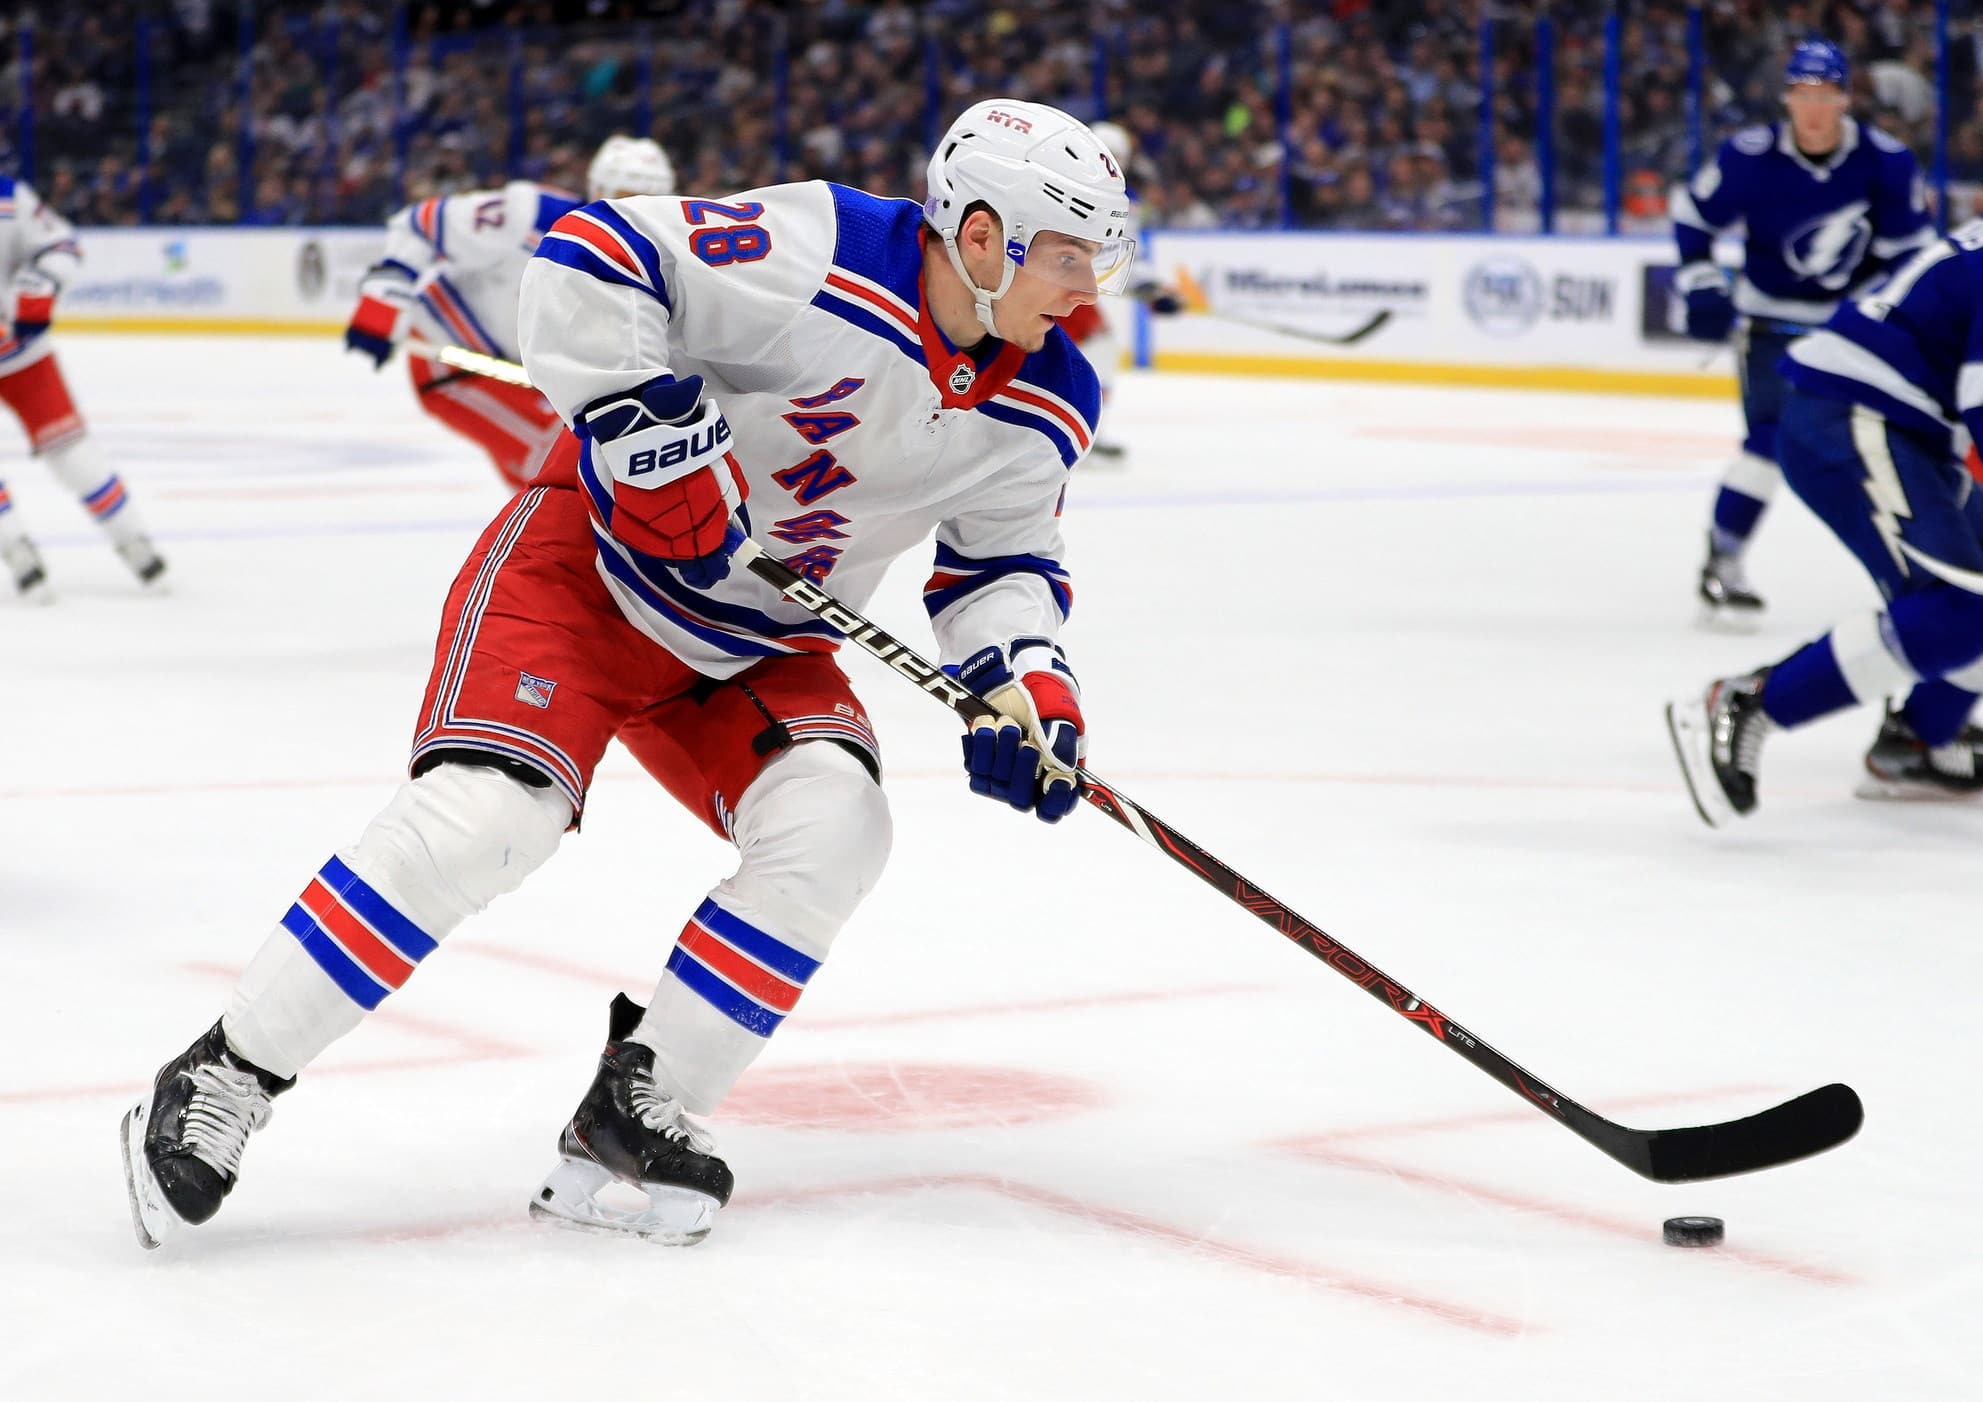 Rangers' Andersson requests trade